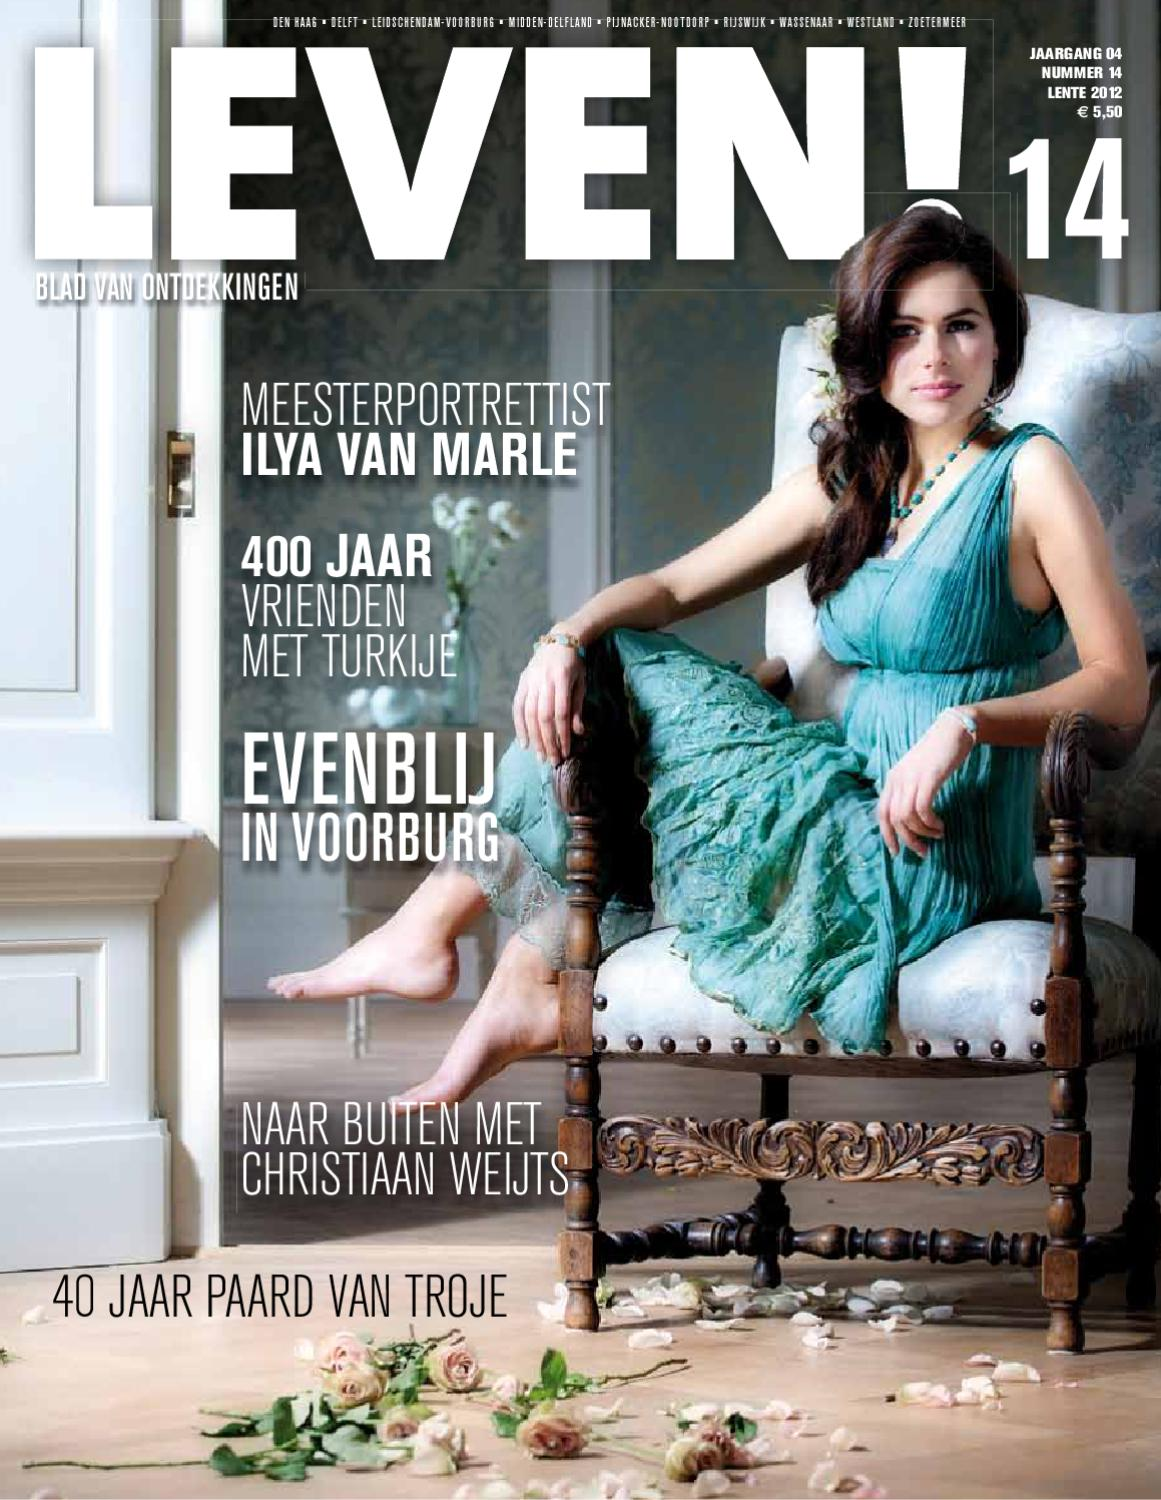 Leven! den haag #14 lente 2012 by zabriski media   issuu